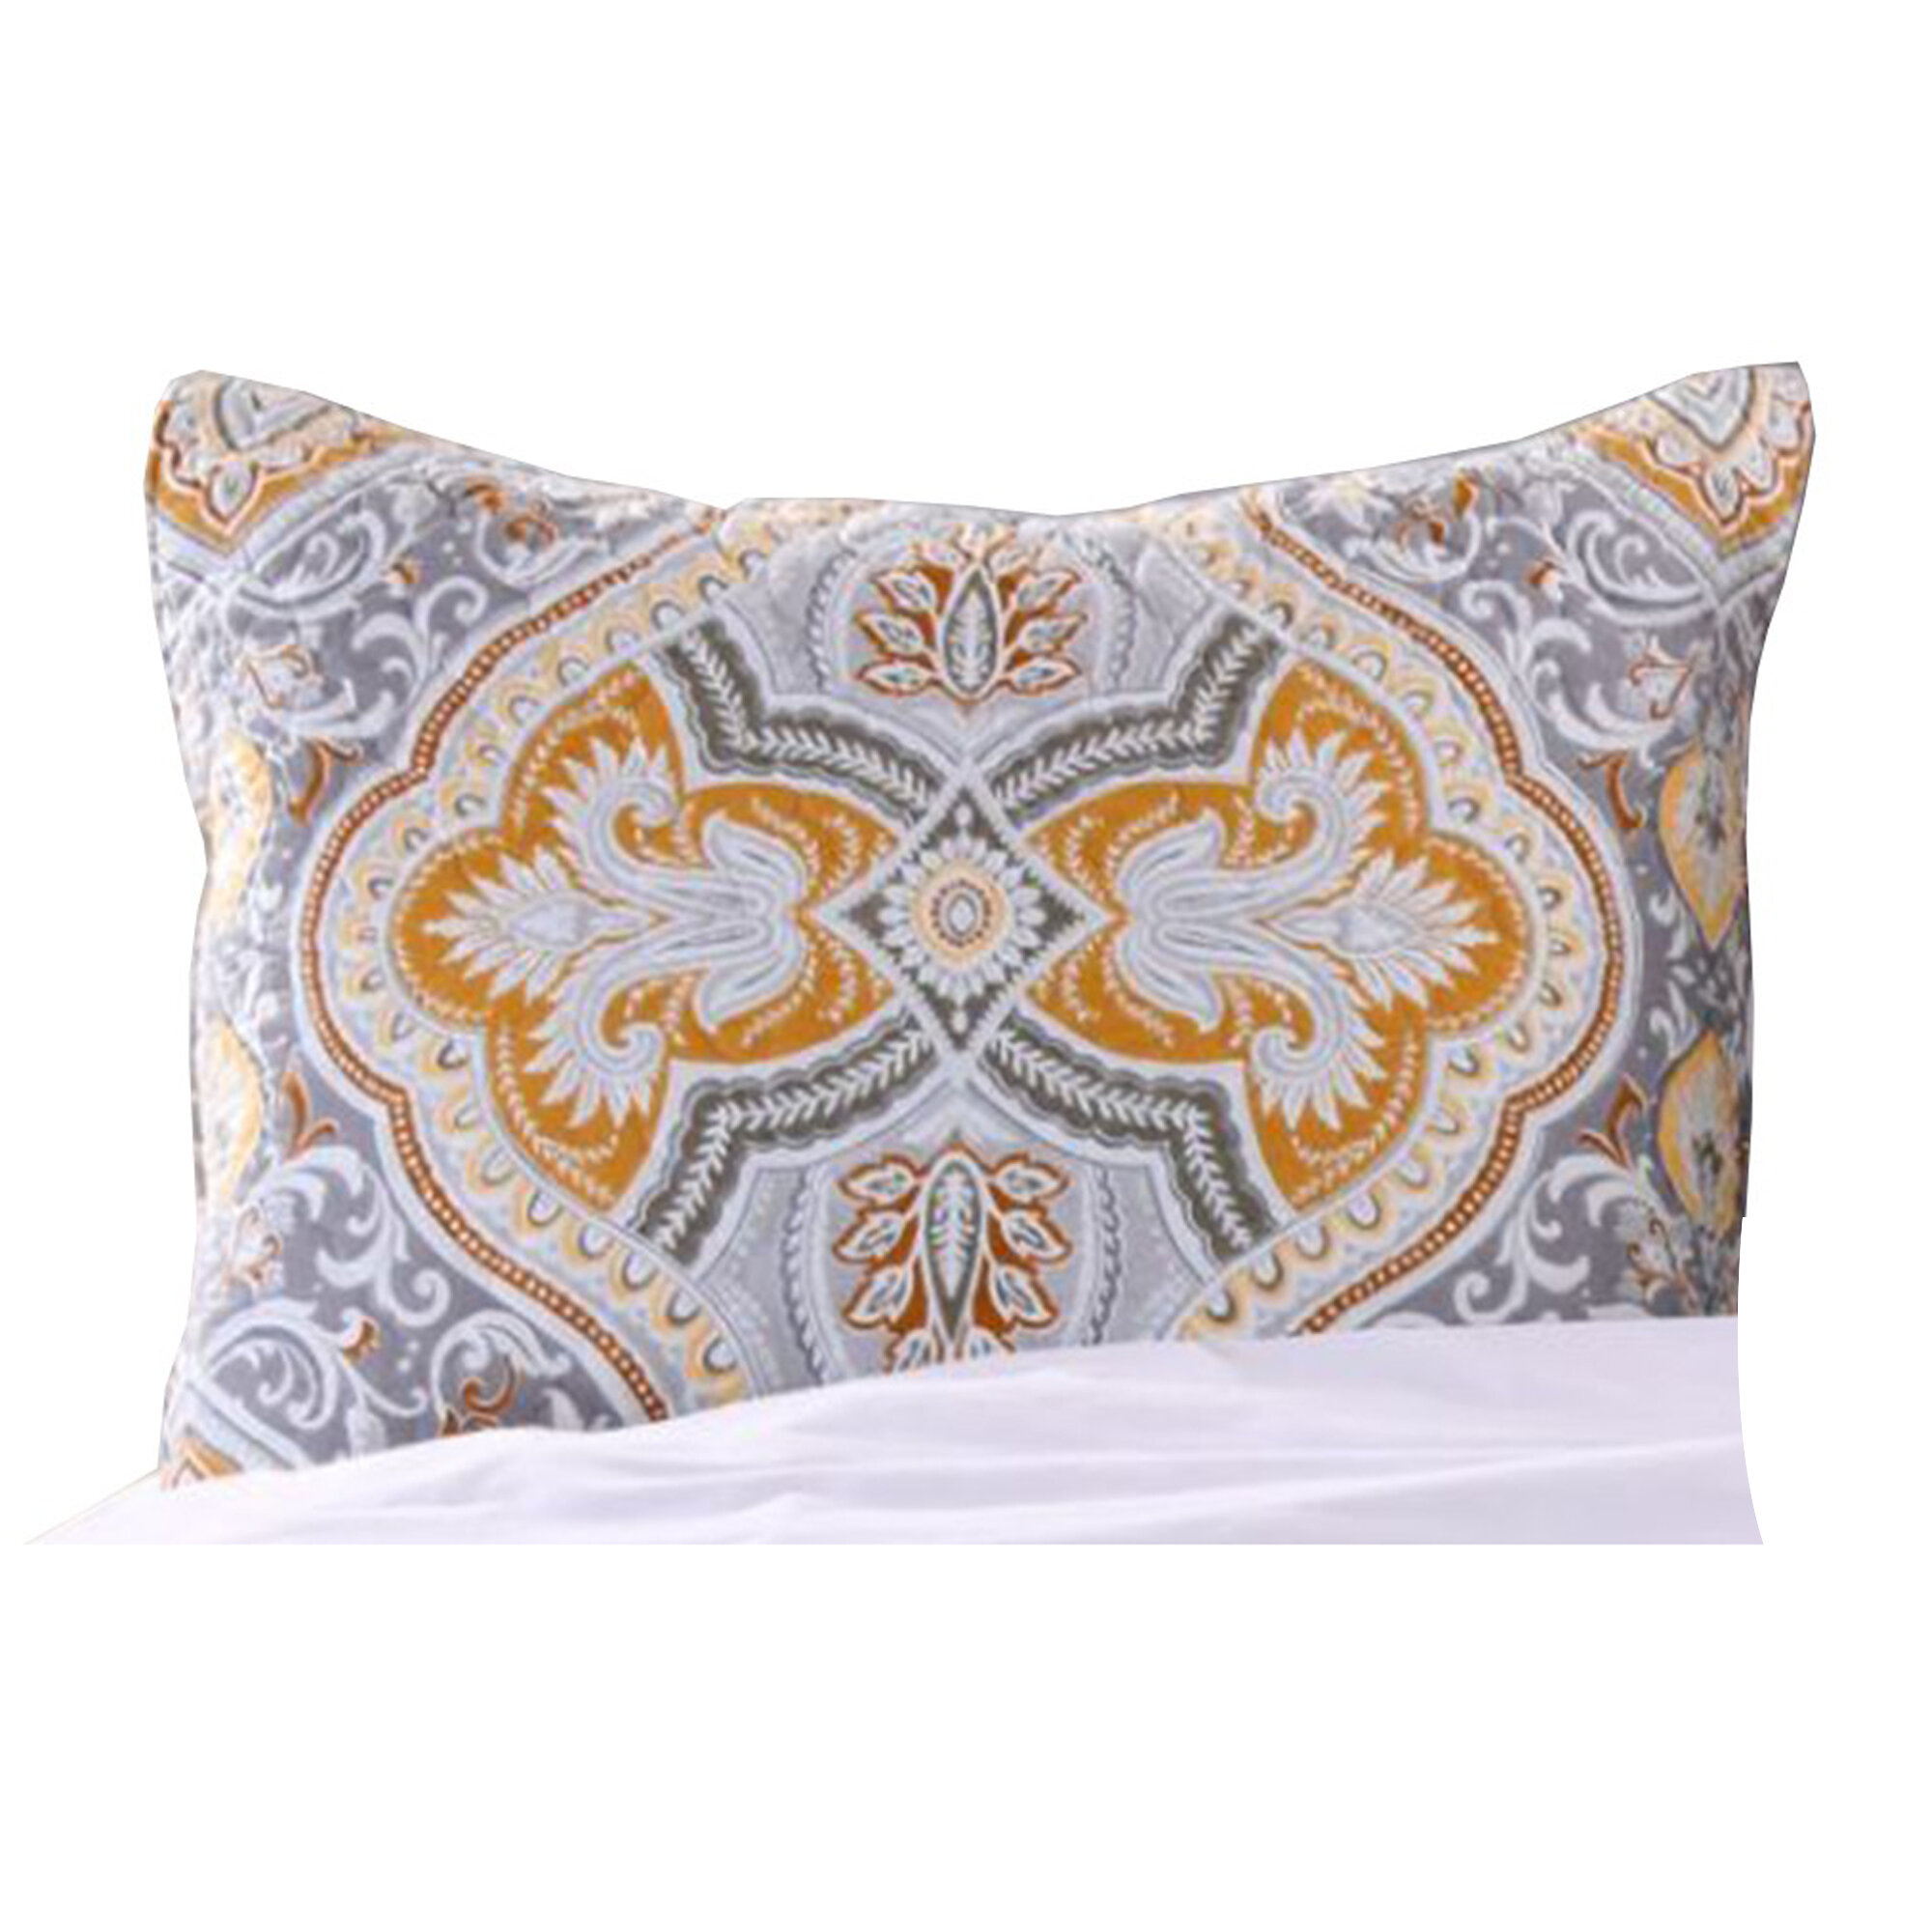 Cotton Blend Envelope Pillow Shams Euro Shams You Ll Love In 2021 Wayfair